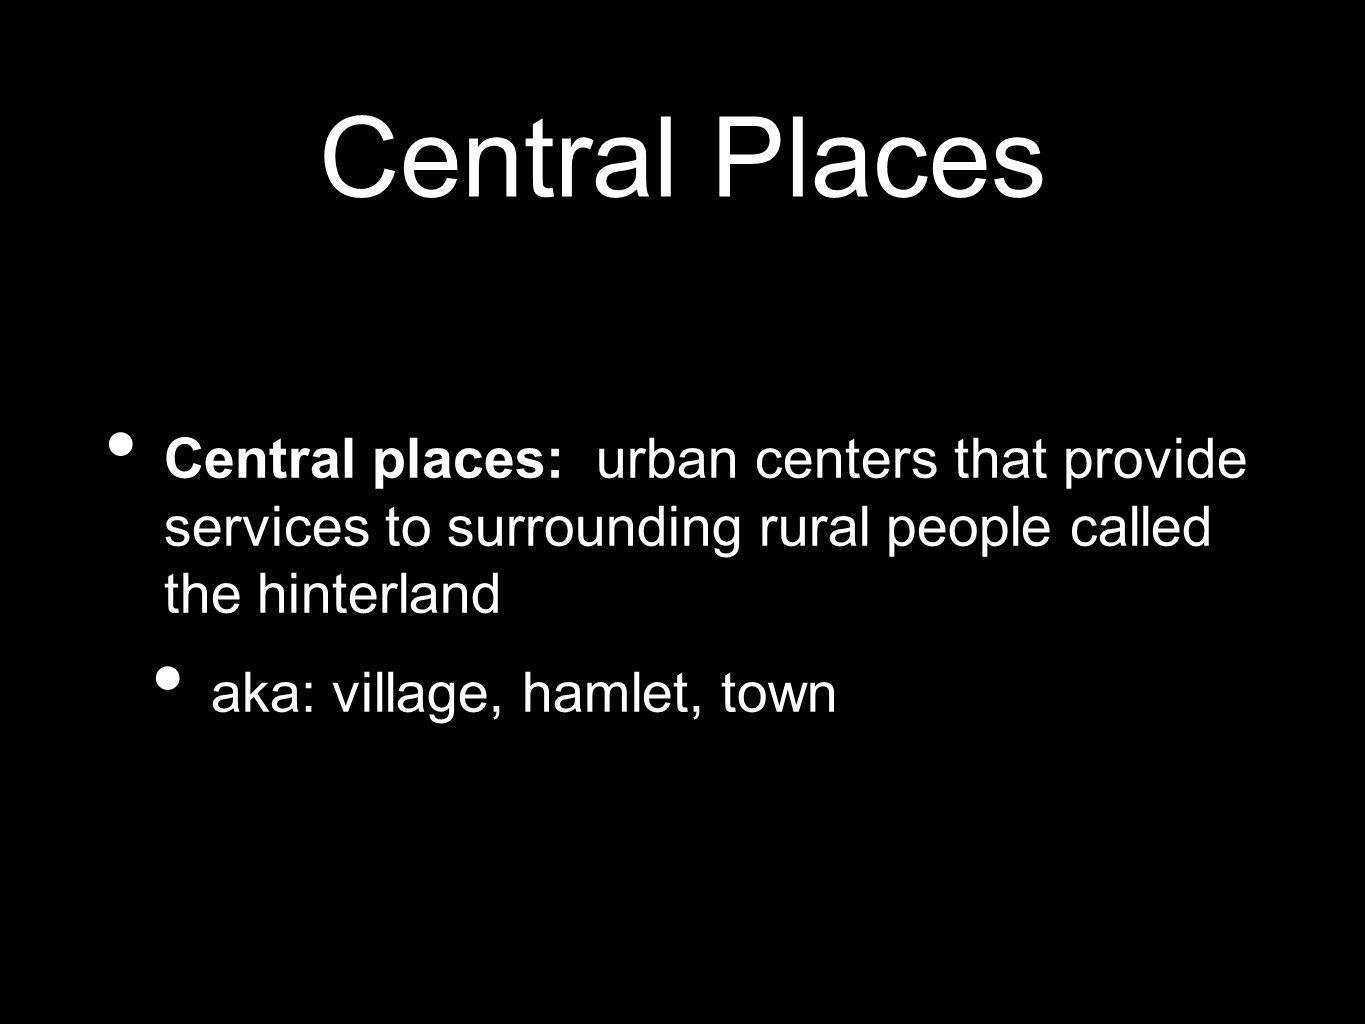 Central PlacesCentral places: urban centers that provide services to surrounding rural people called the hinterland.